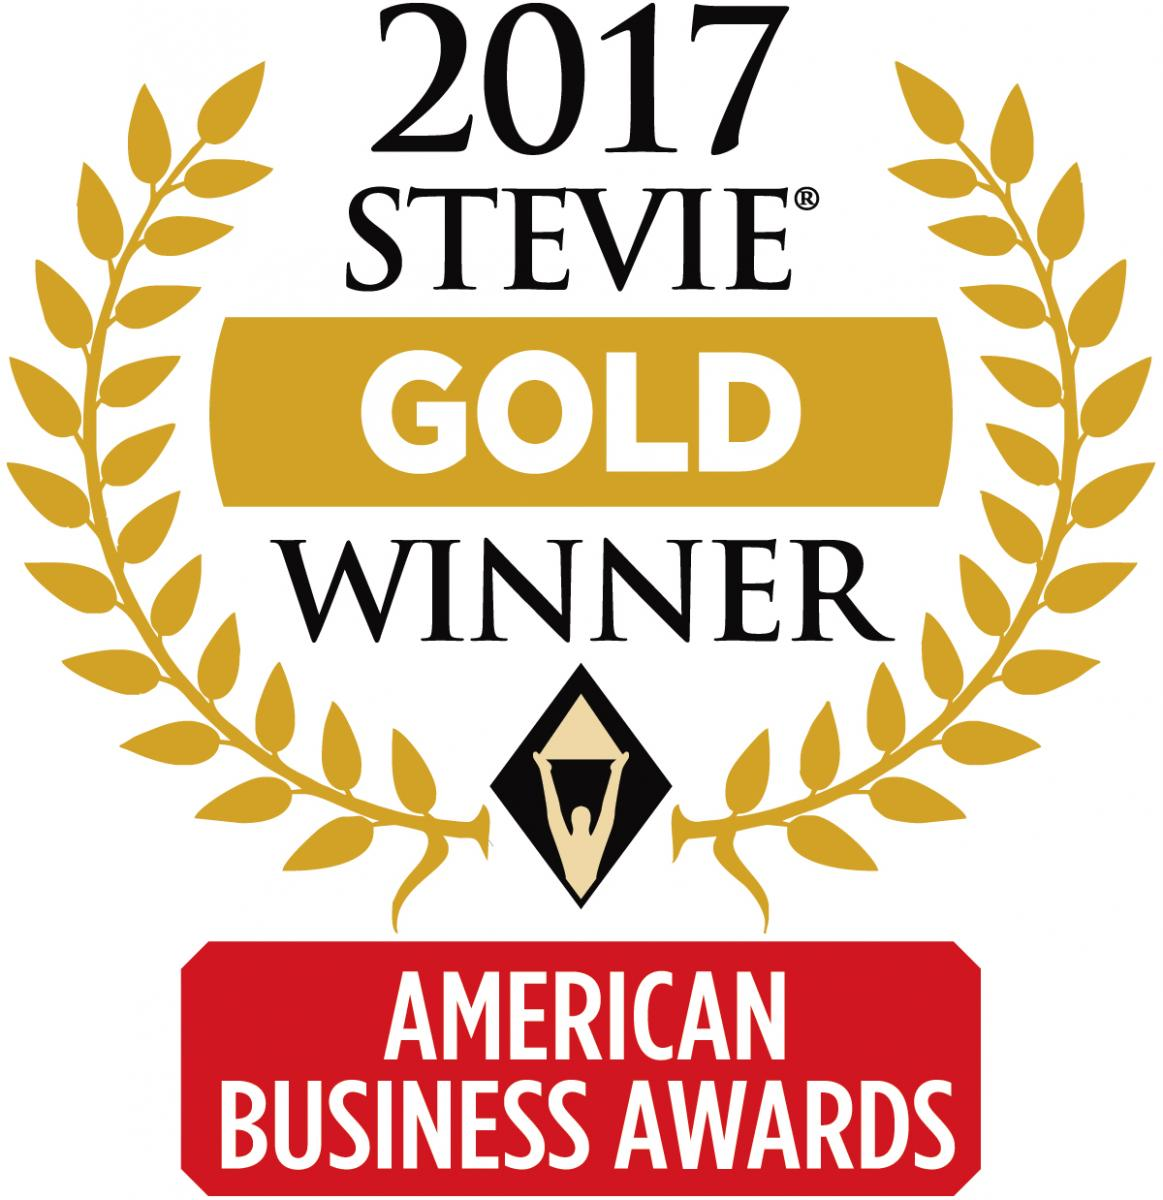 BDA, 2017 Stevie Gold Winner